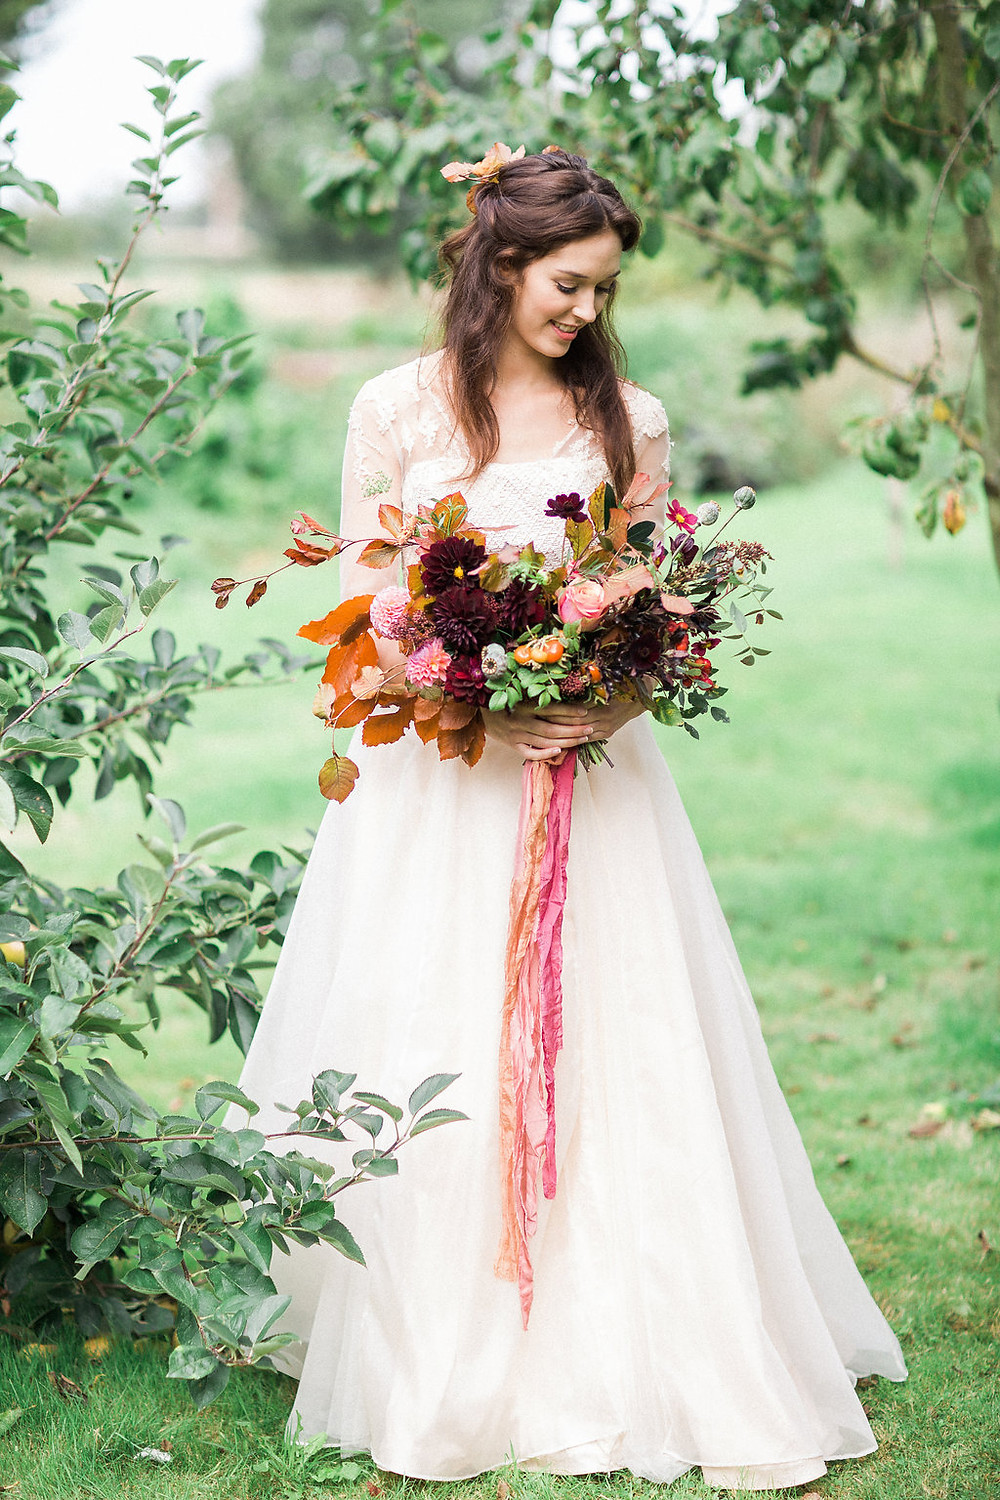 A Wedding Dress for an Autumnal Bride by Jessica Turner Designs